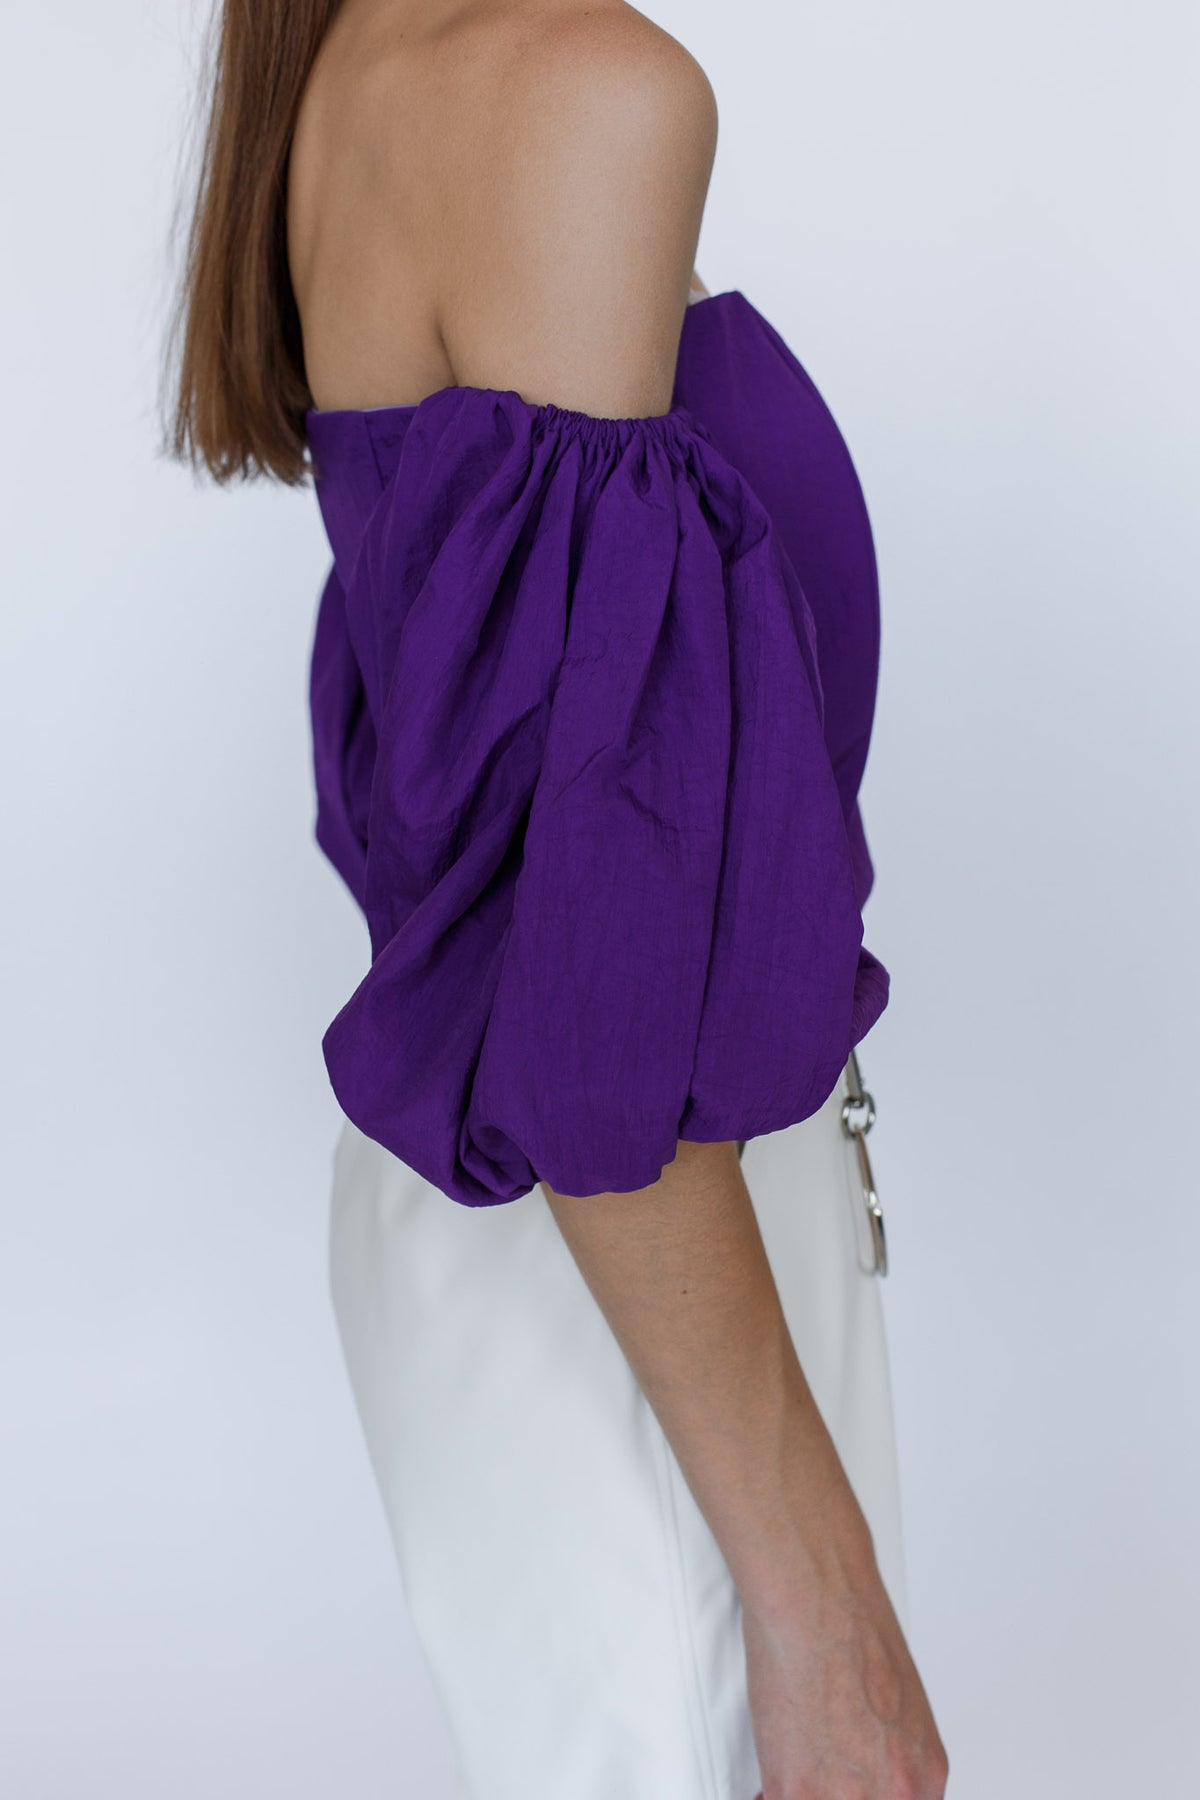 FRIDA | Violet volume sleeve top